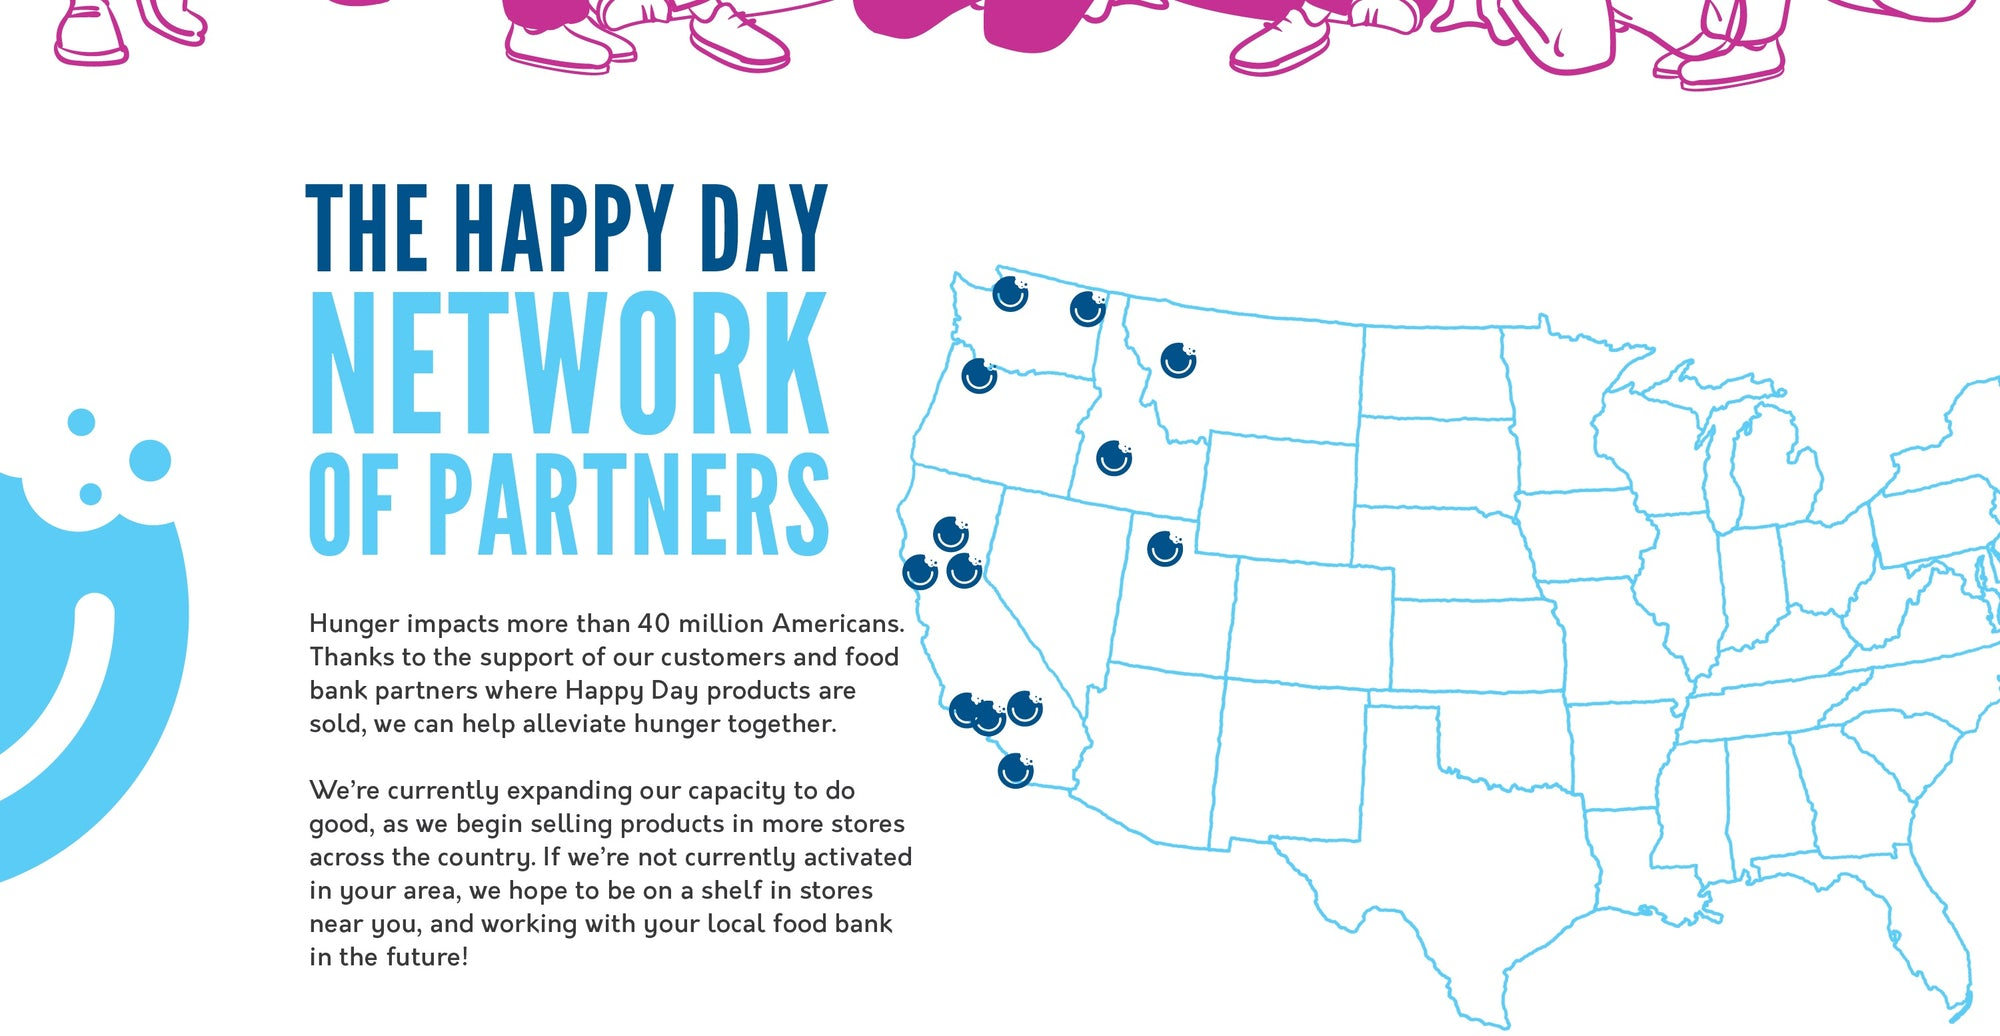 HAPPY DAY BRANDS NETWORK OF FOOD BANK PARTNERS